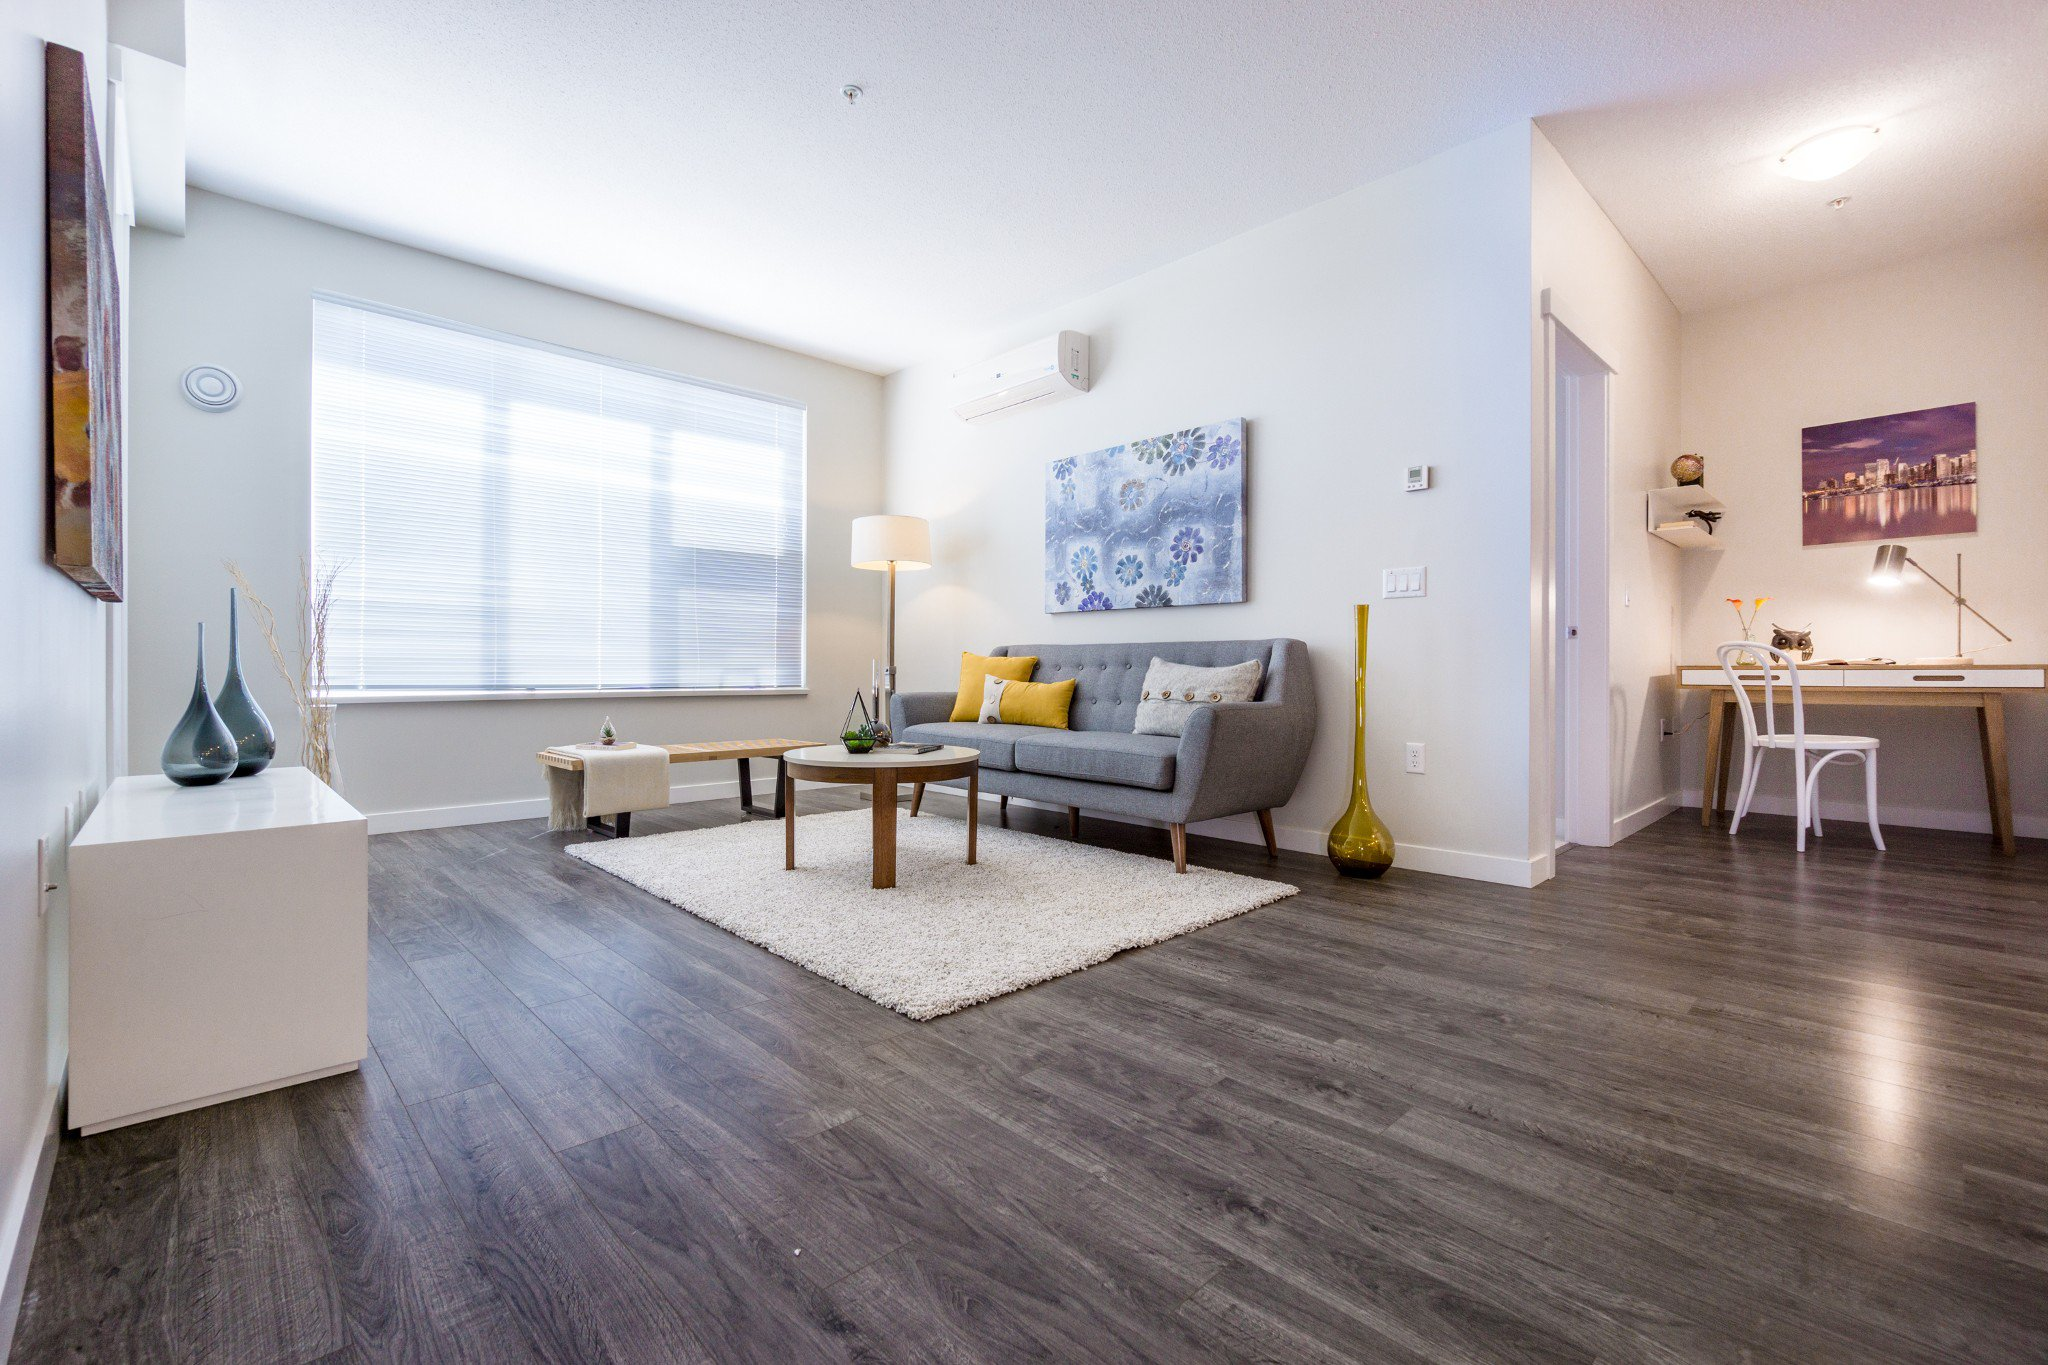 """Photo 16: Photos: 402 9311 ALEXANDRA Road in Richmond: West Cambie Condo for sale in """"ALEXANDRA COURT"""" : MLS®# R2266613"""